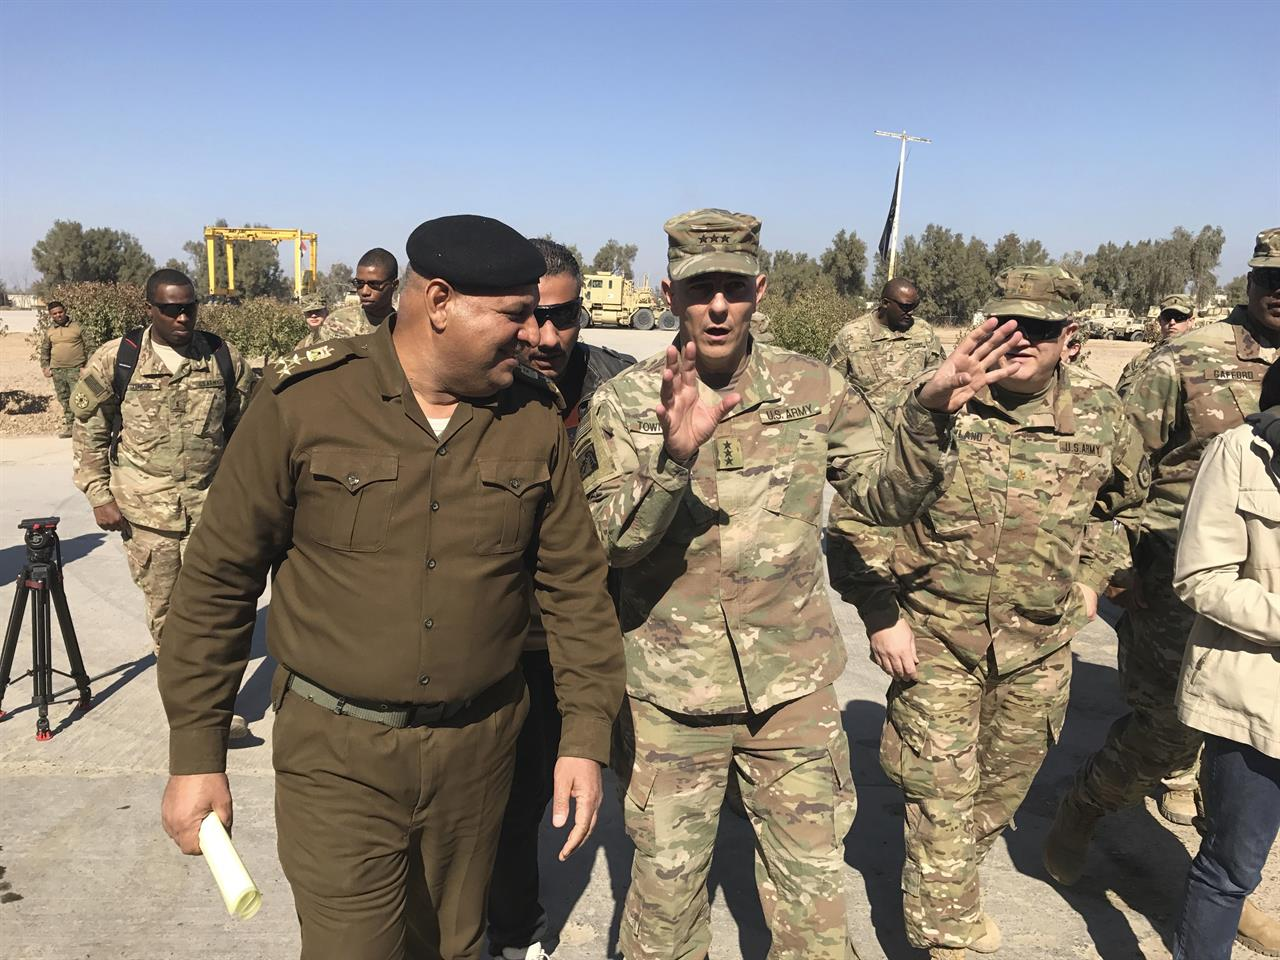 FILE - In this Feb. 8, 2017, file photo, then-Army Lt. Gen. Stephen Townsend talks with an Iraqi officer during a tour north of Baghdad, Iraq. Townsen, now a general, says a growing military threat from China may well come from America's east, as Beijing looks to establish a large navy port capable of hosting submarines or aircraft carriers on the Atlantic coast of Africa.(AP Photo/ Ali Abdul Hassan, File)